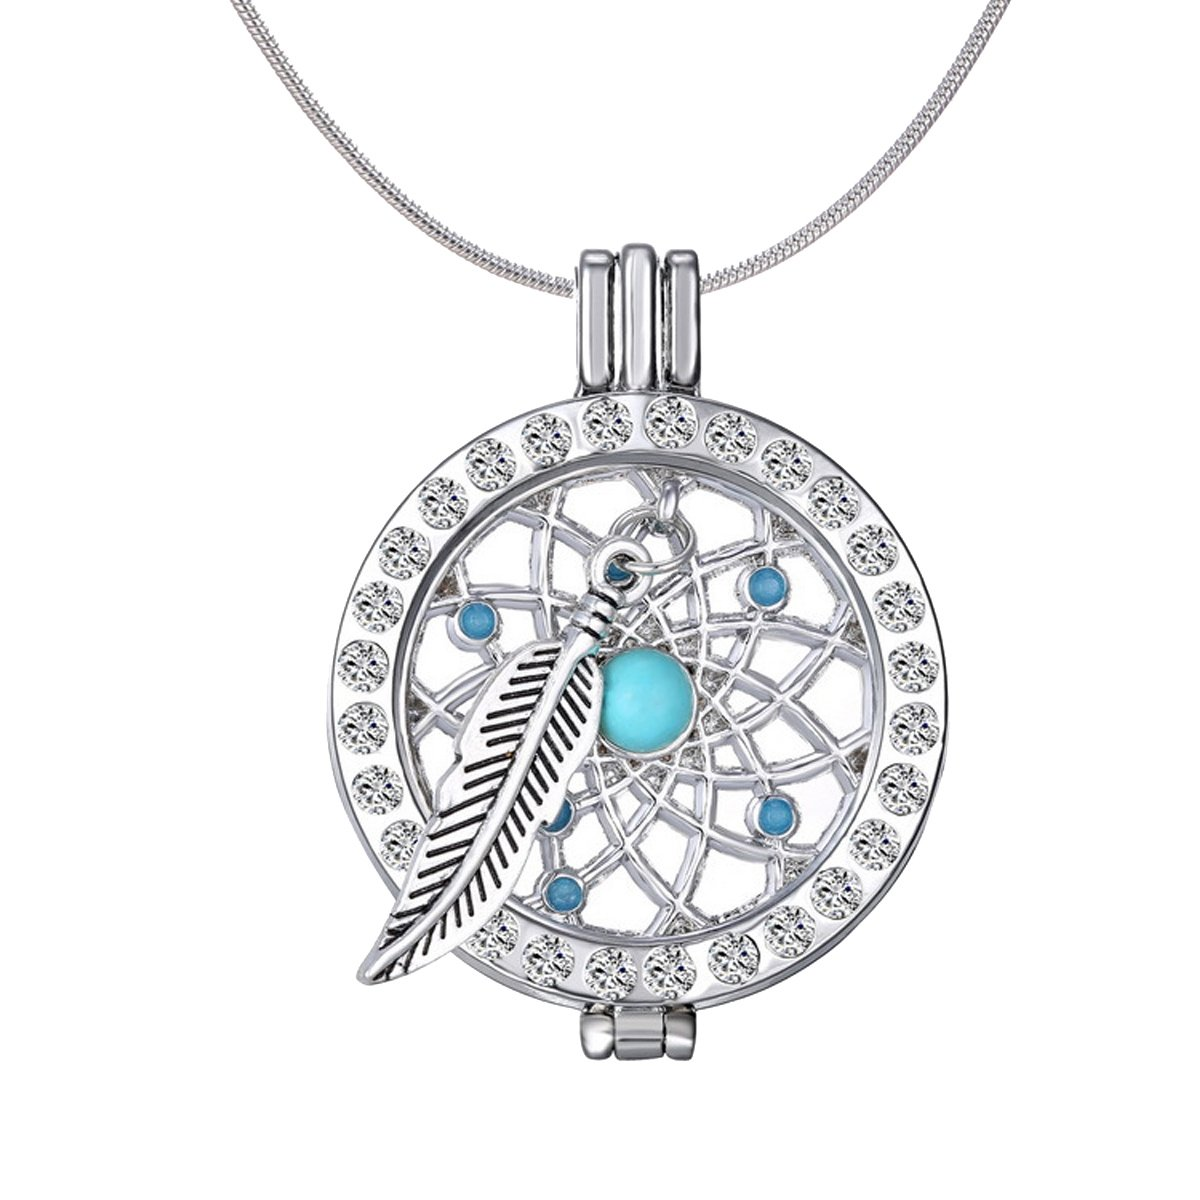 Charms Dreamcatcher Crystal Locket Turquoise Coin Pendant Essential Oil Diffuser Snake Chain Necklace